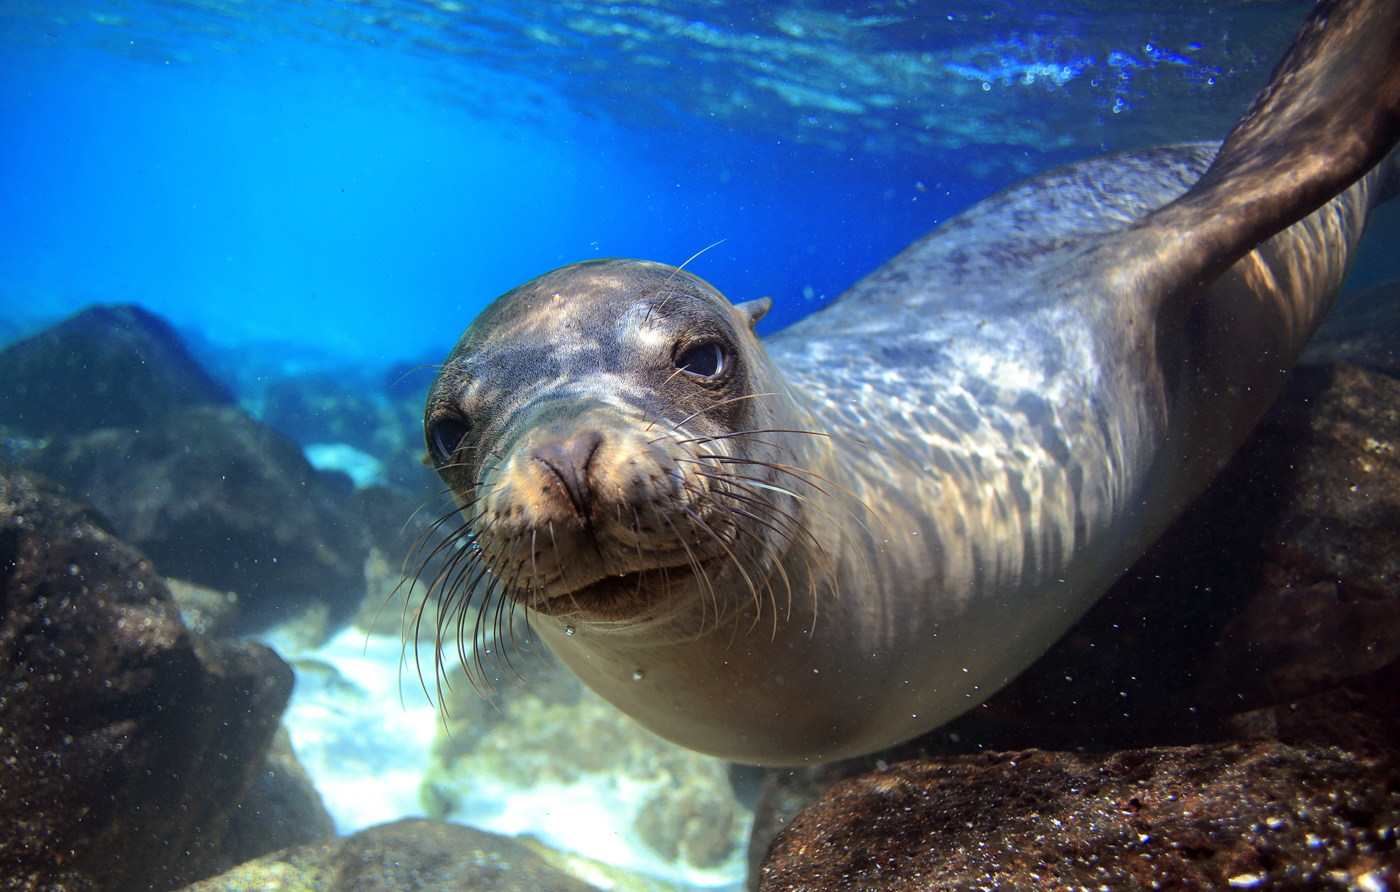 GPS_sealion_shutterstock147144572_freewithcredit